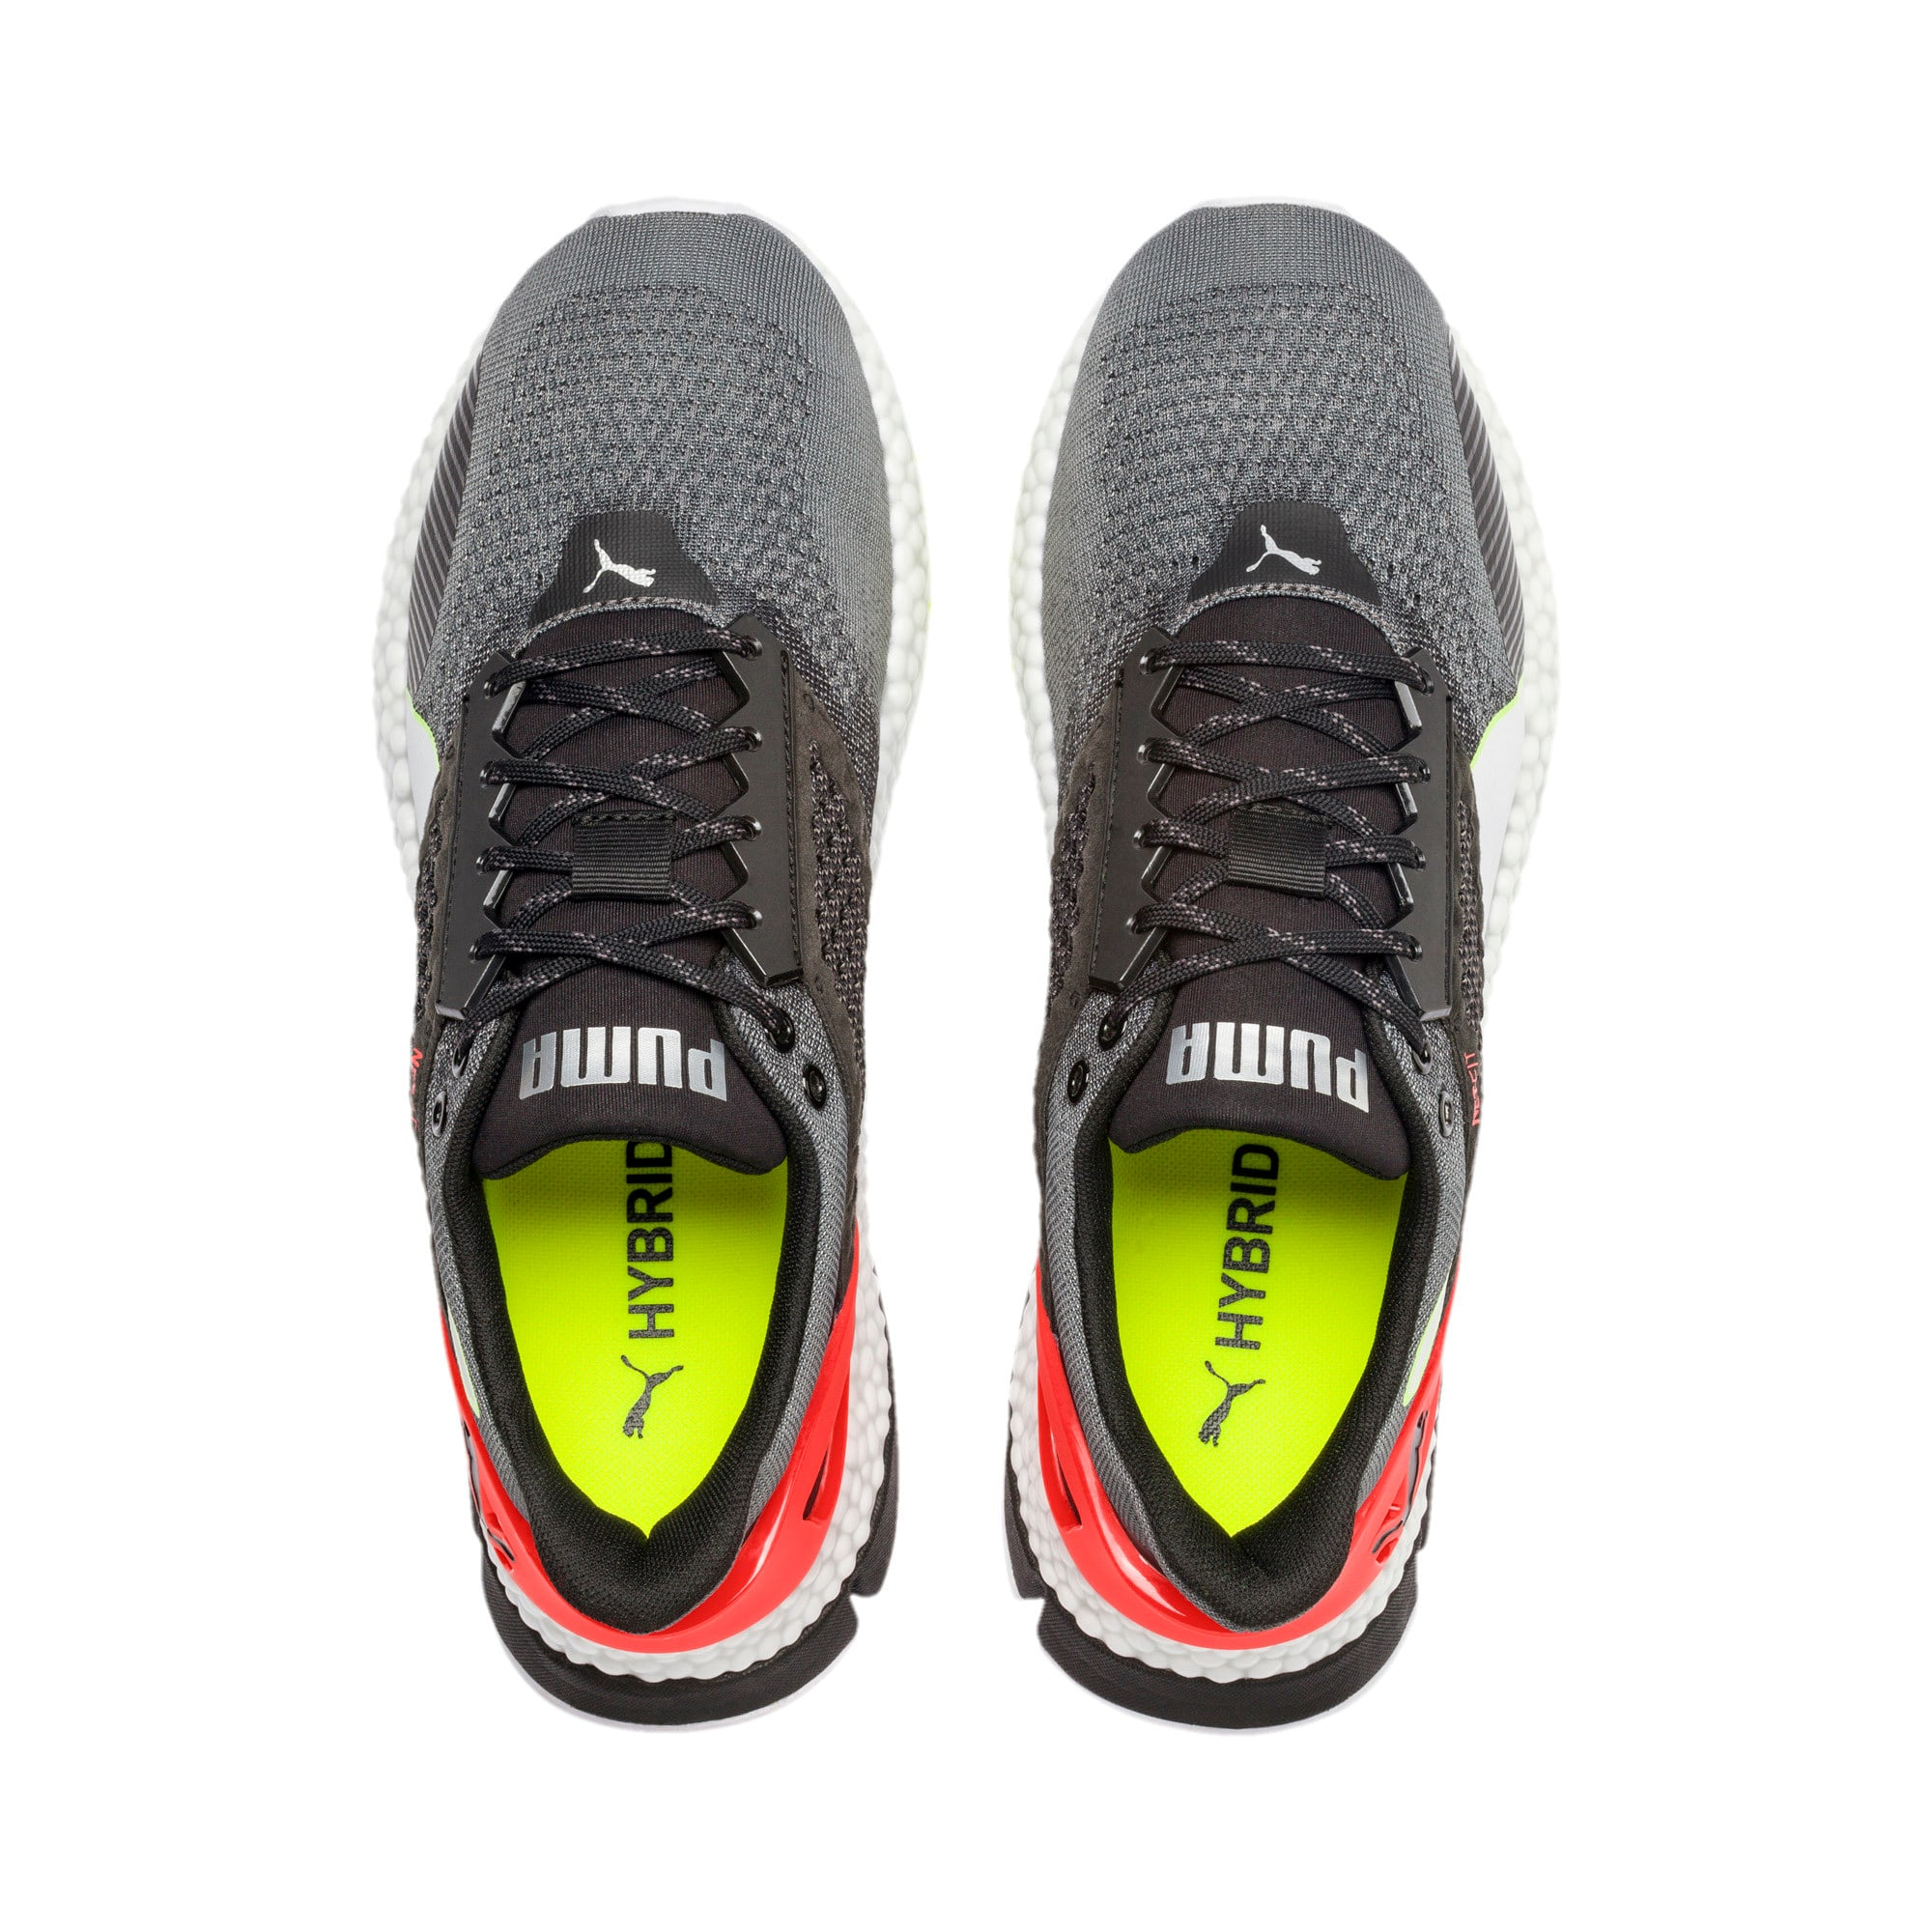 Thumbnail 8 of HYBRID Astro Men's Running Shoes, CASTLEROCK-Puma Blck-Ngy Red, medium